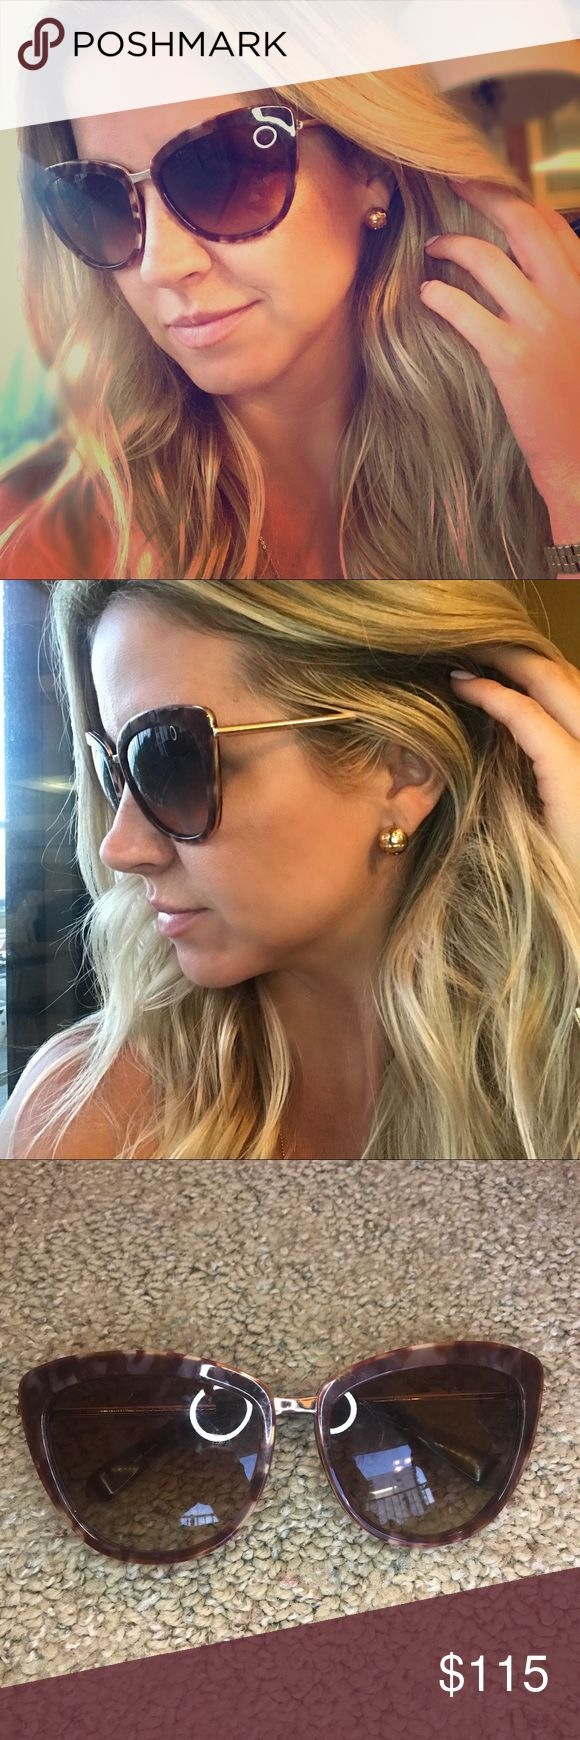 Kate Spade tortoise cat eyed sunglasses Sassy and classy! Brand new without tags, never worn no damage or scratches! Tortoise framed with gold trim, sturdy and comfortable! Reg $195 kate spade Accessories Sunglasses